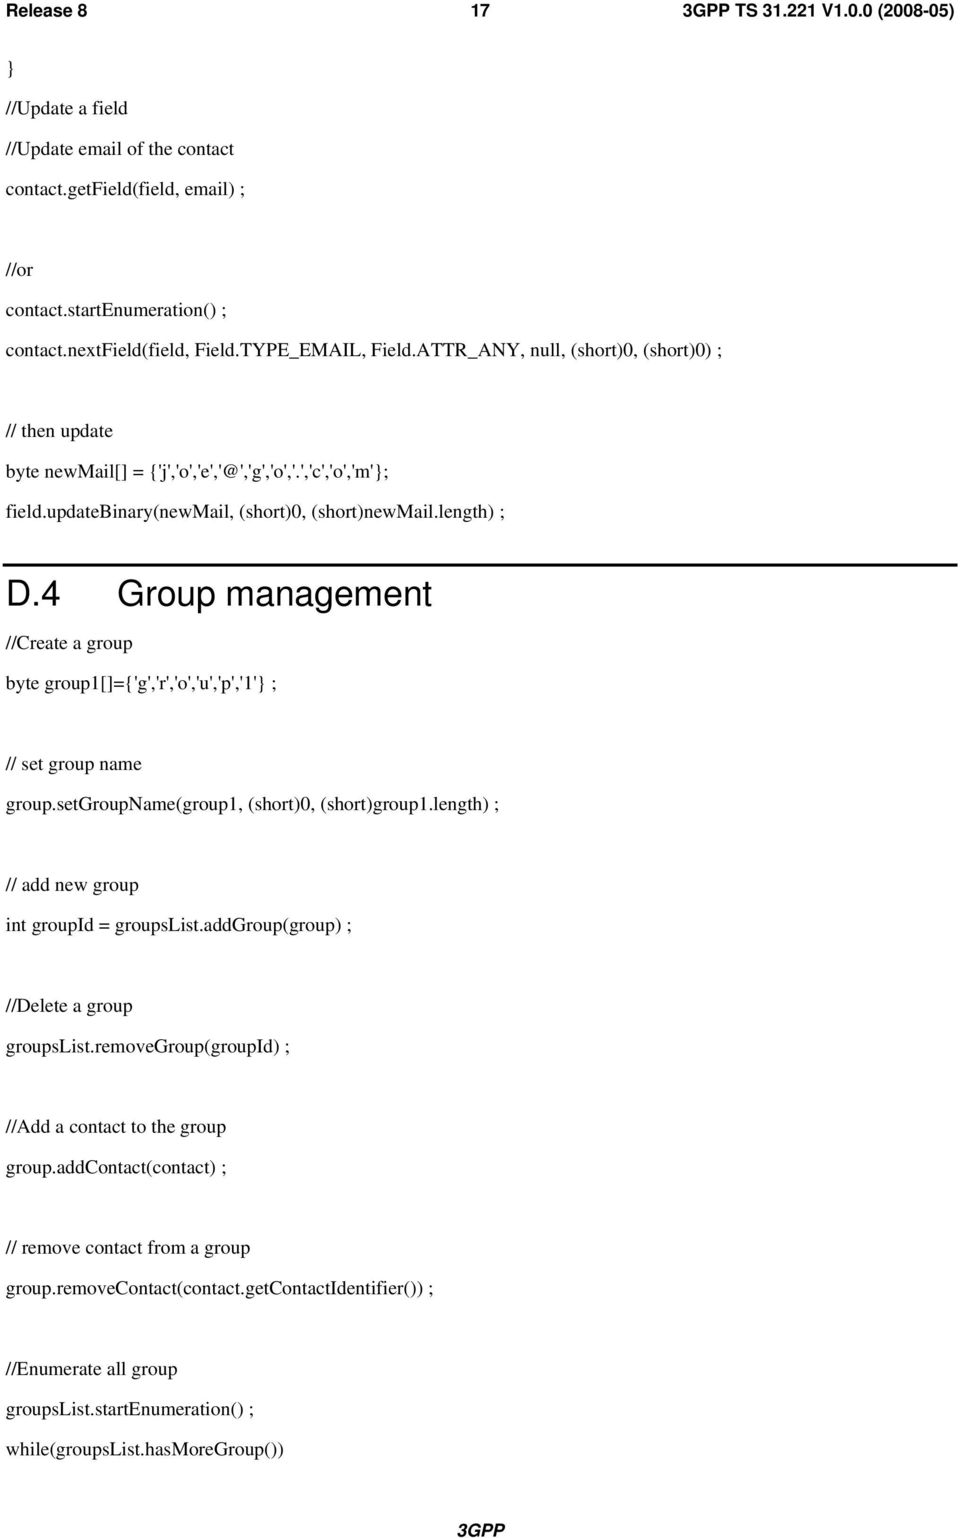 4 Group management //Create a group byte group1[]={'g','r','o','u','p','1'} ; // set group name group.setgroupname(group1, (short)0, (short)group1.length) ; // add new group int groupid = groupslist.